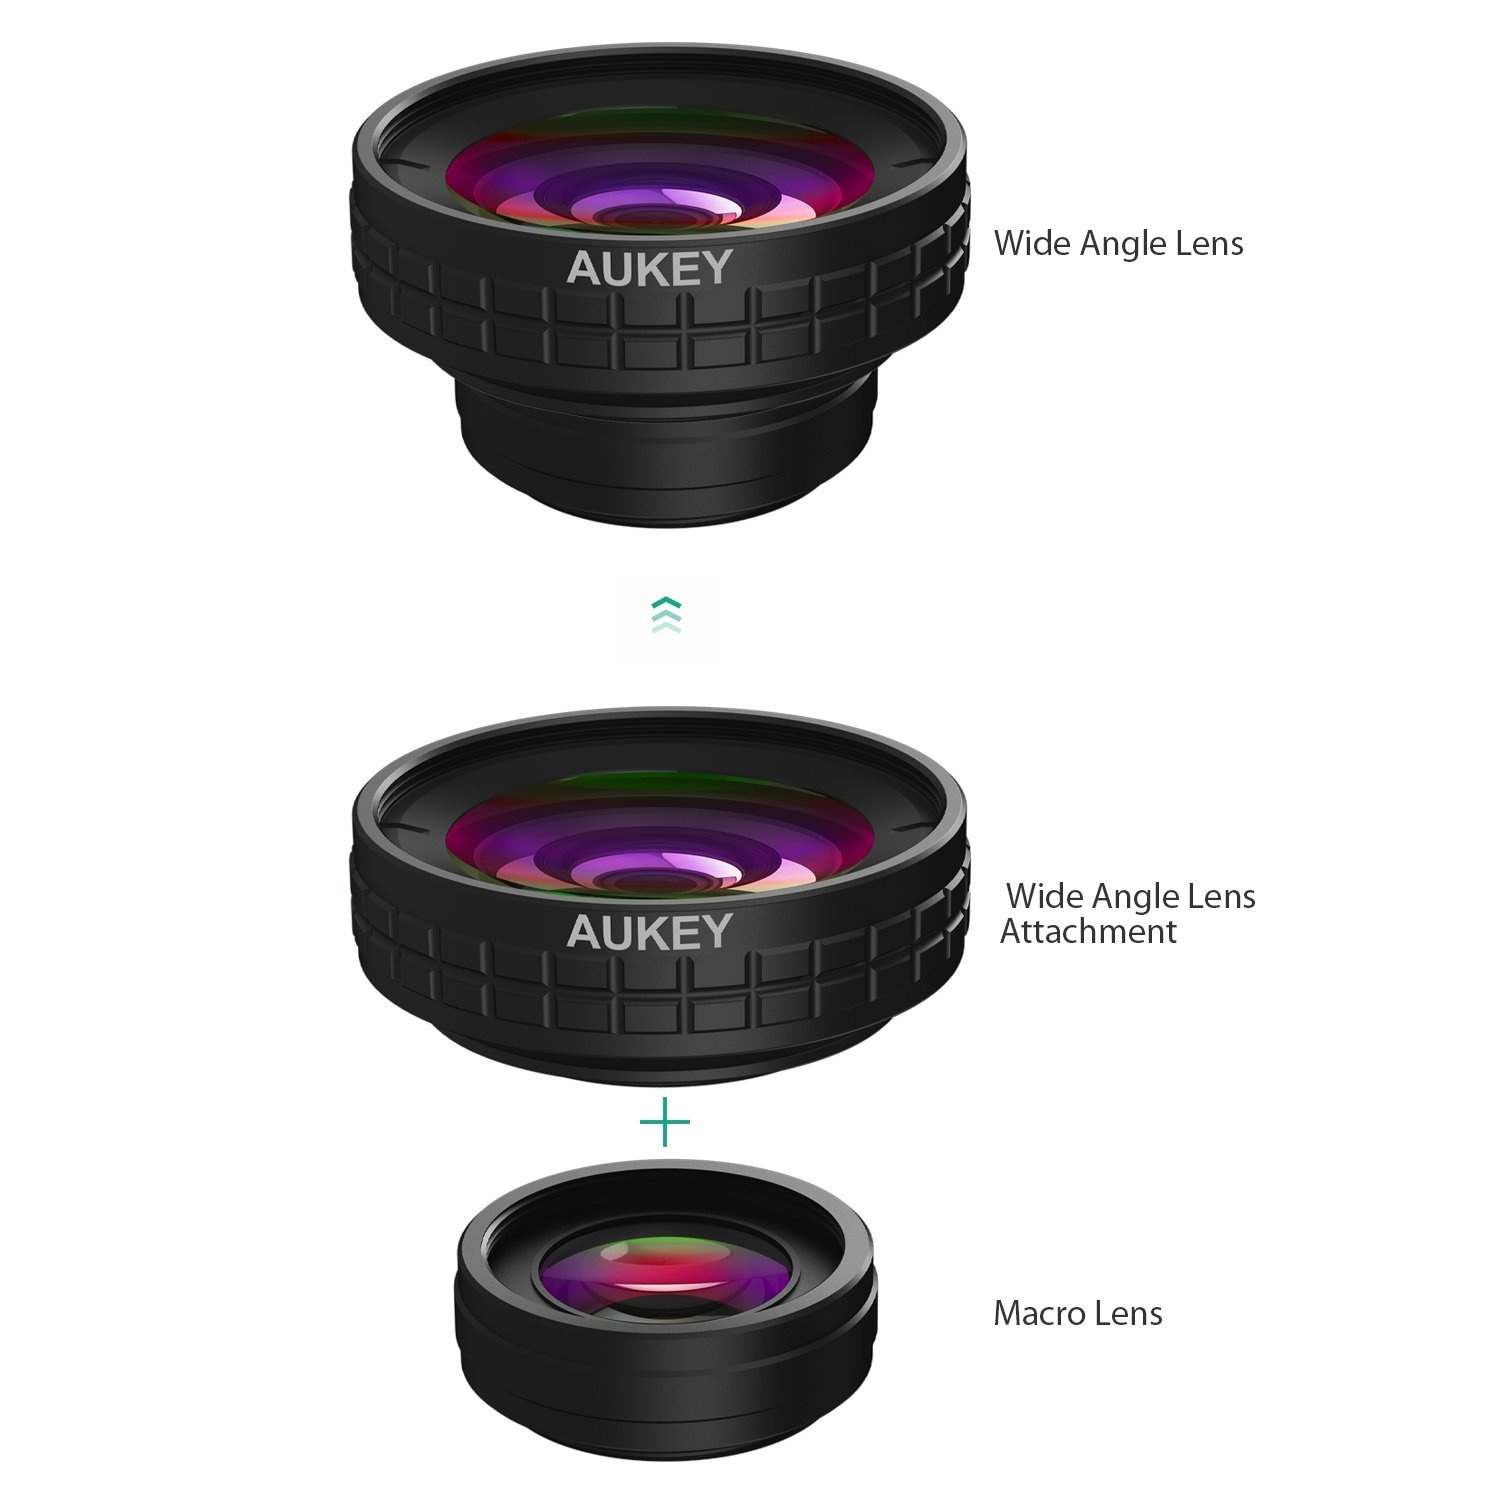 AUKEY Ora iPhone Lens, 0 45x 140° Wide Angle + 10x Macro Clip-on Cell Phone  Camera Lenses Kit for Samsung , Android Smartphones, iPhone